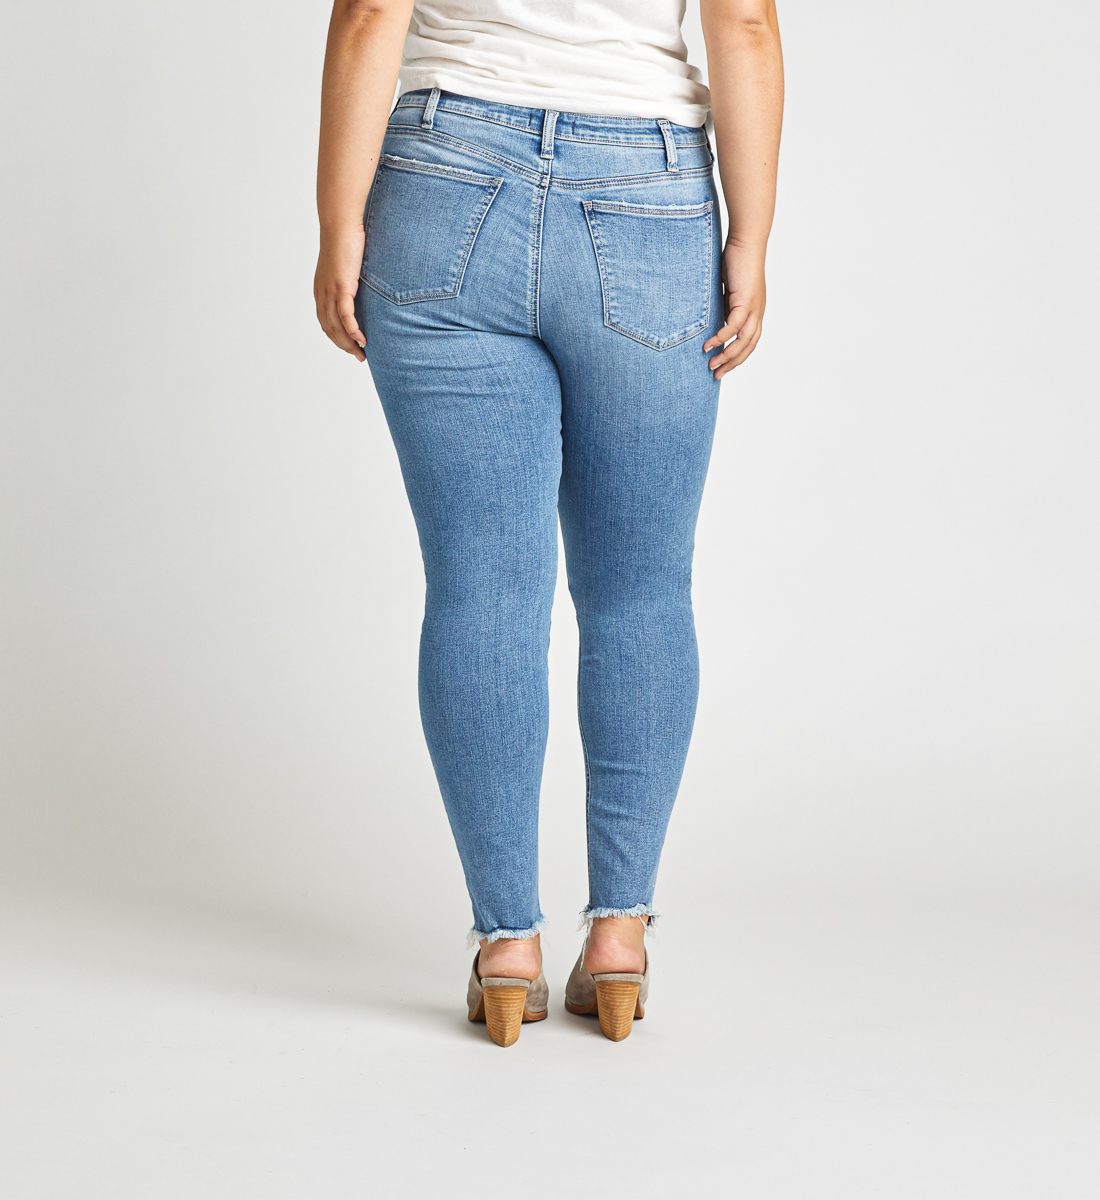 High Note High Rise Skinny Jeans Plus Size Side